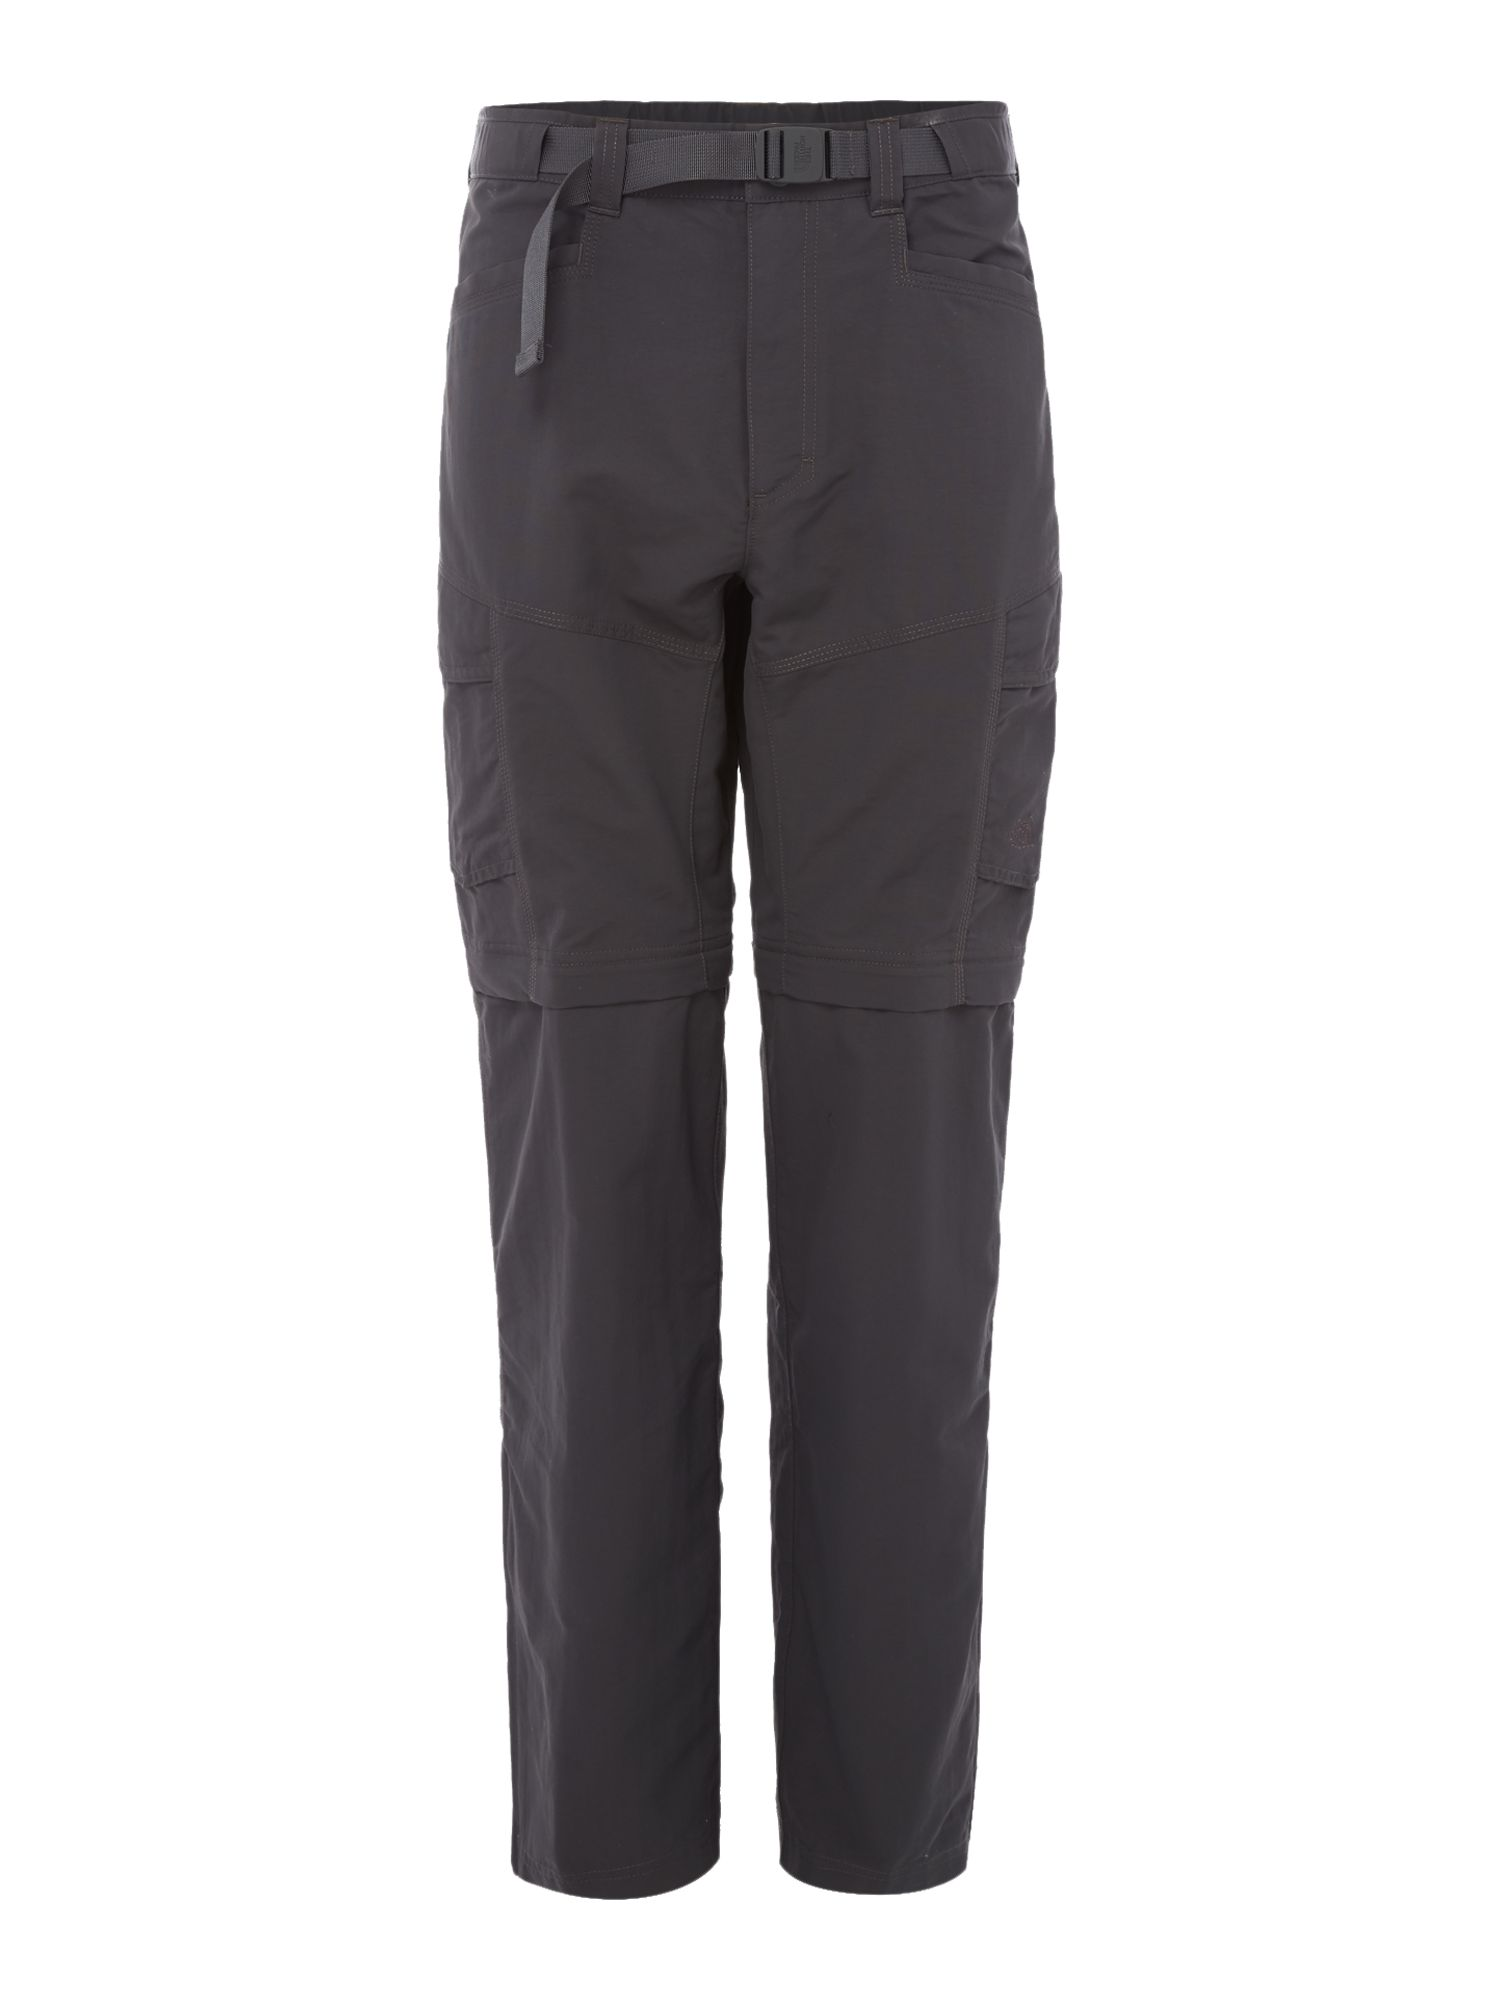 Mens The North Face Paramount peak convertible trousers Charcoal